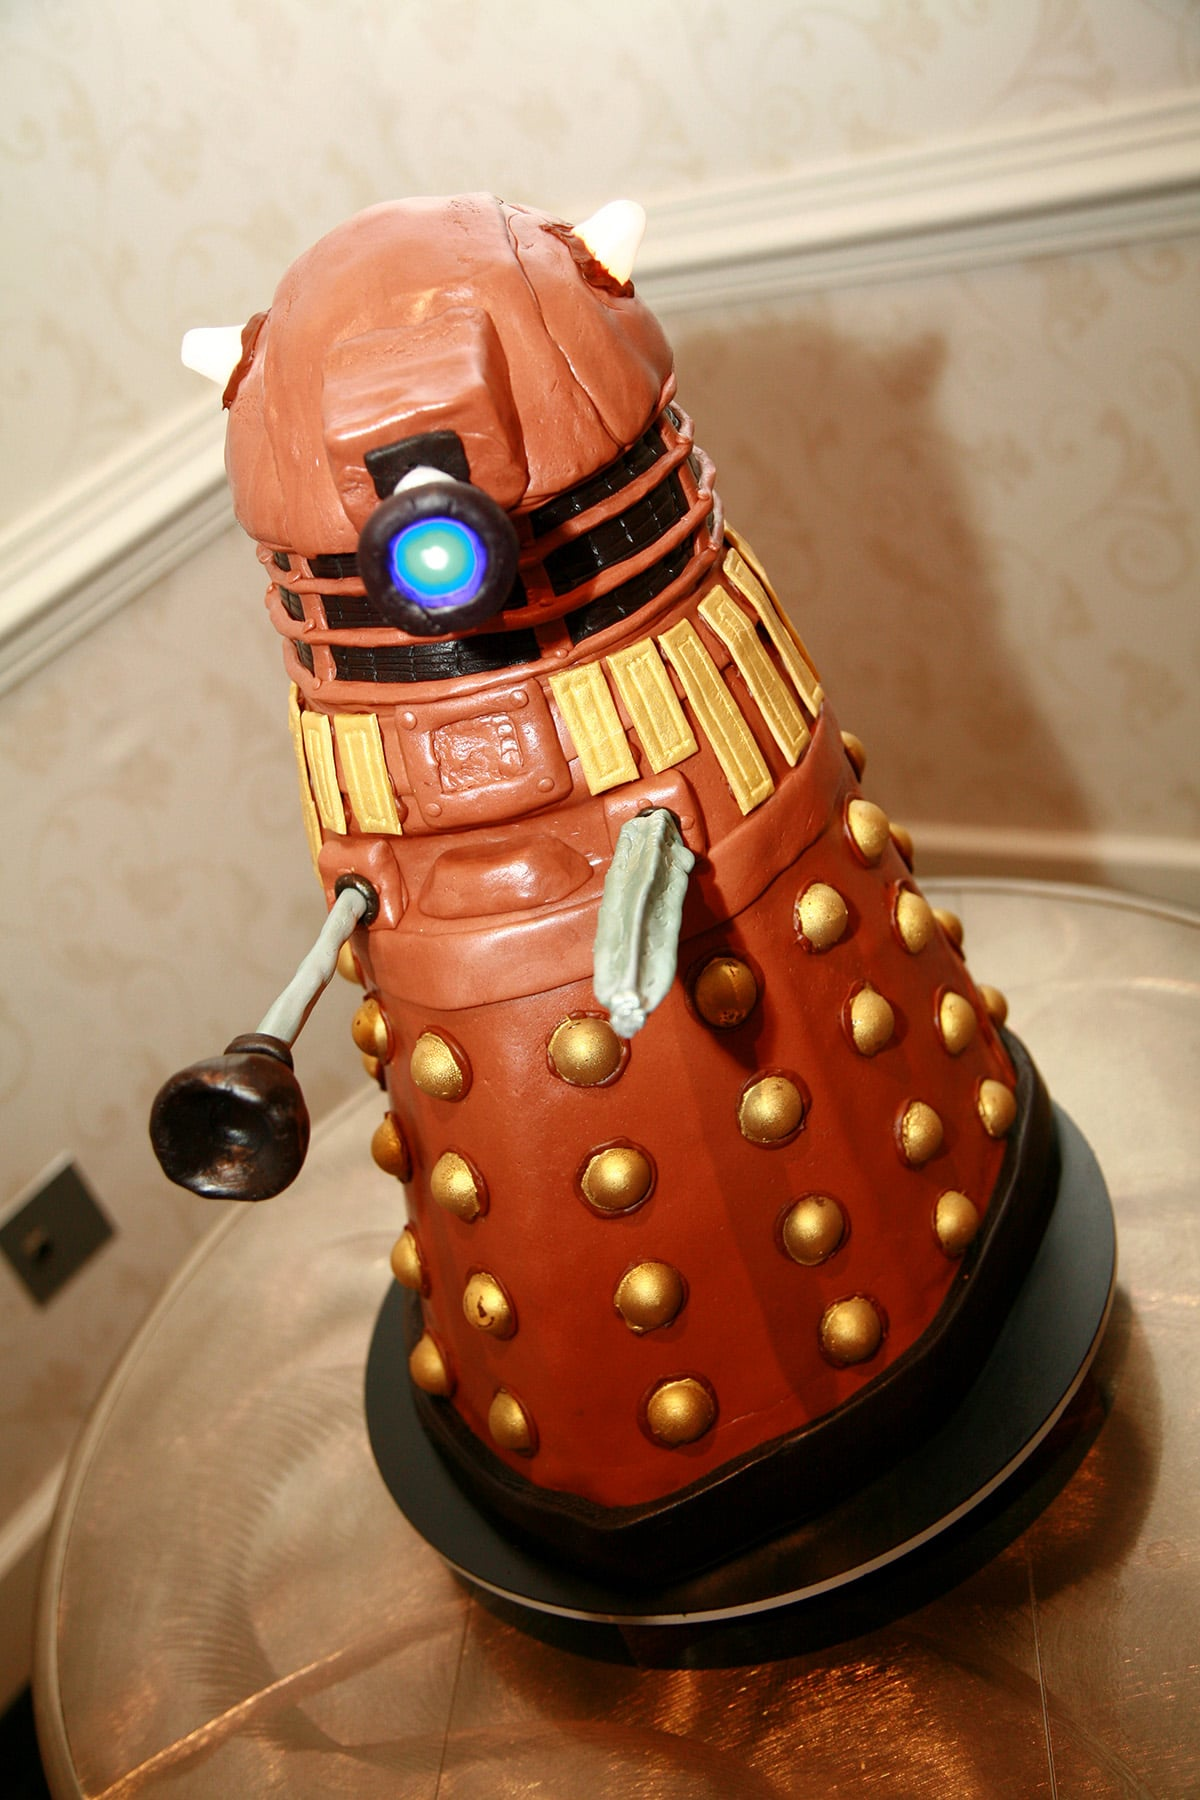 A tall dalek cake, with light up accents.